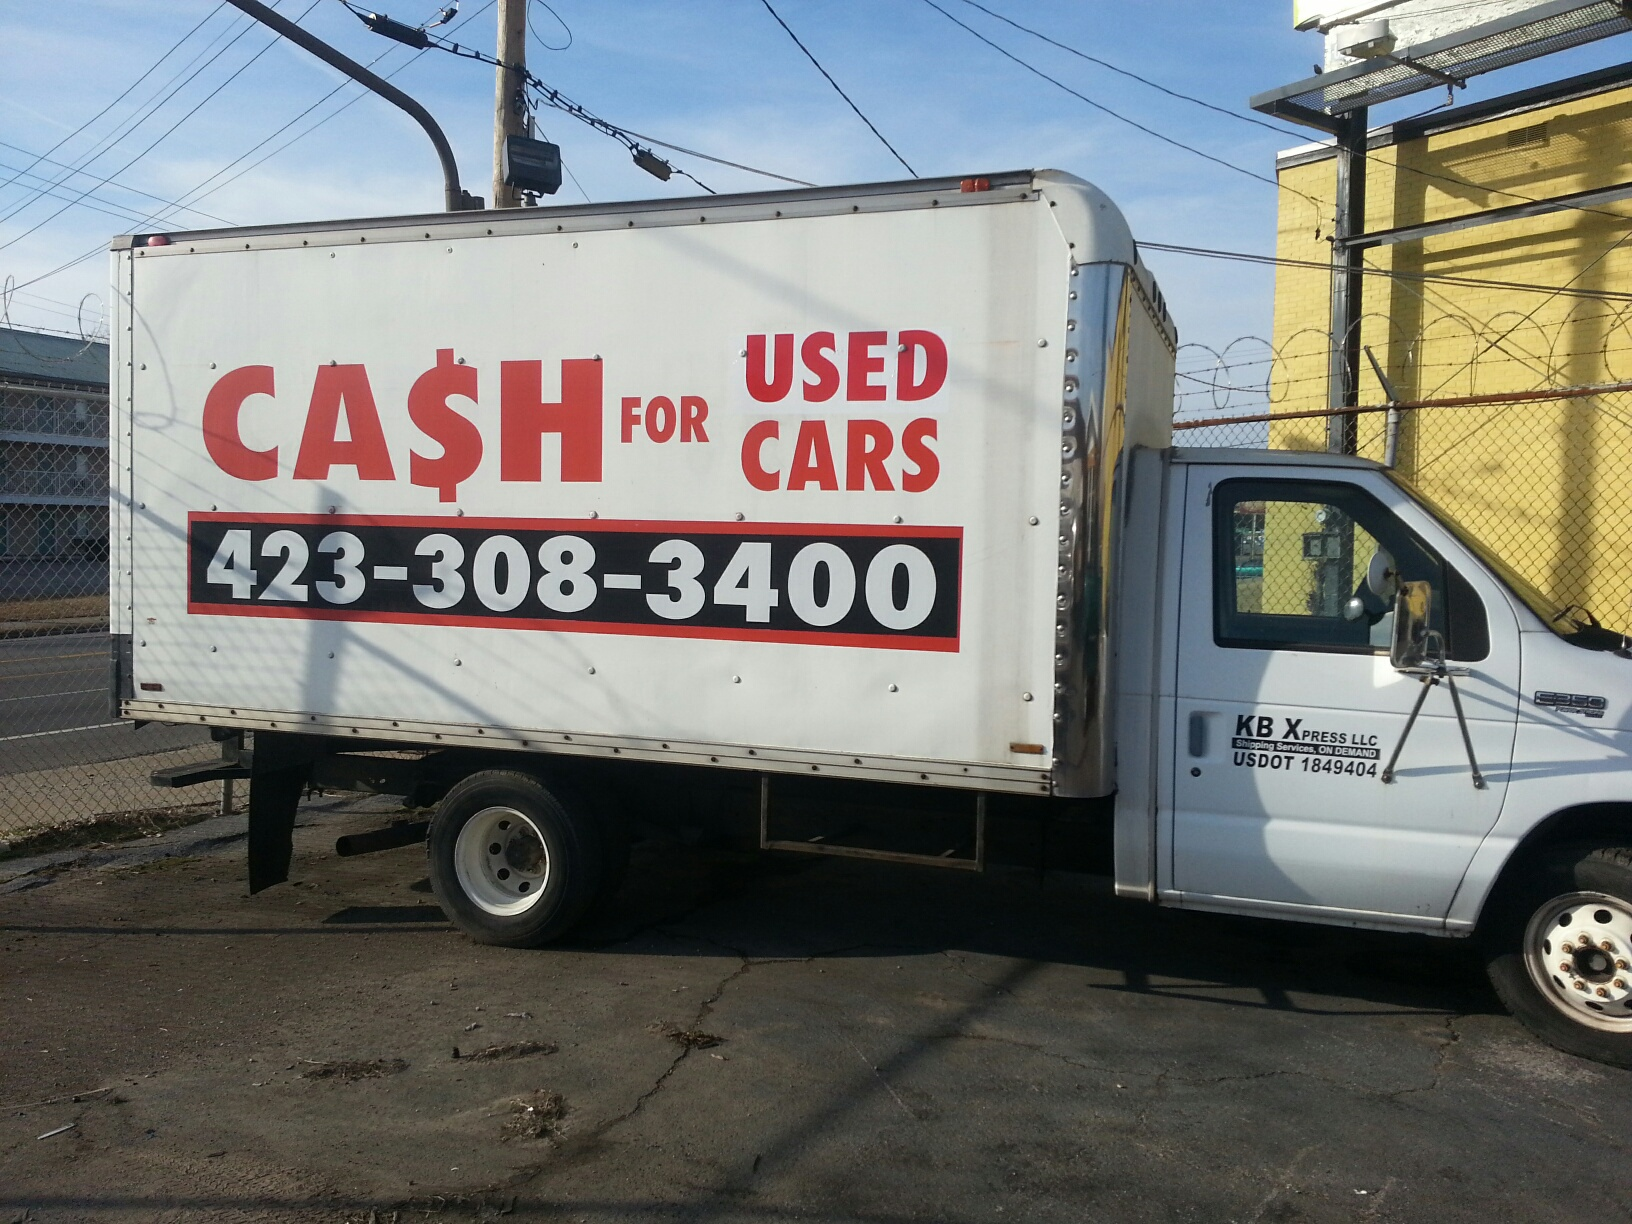 cash for junk cars chattanooga coupons near me in chattanooga 8coupons. Black Bedroom Furniture Sets. Home Design Ideas